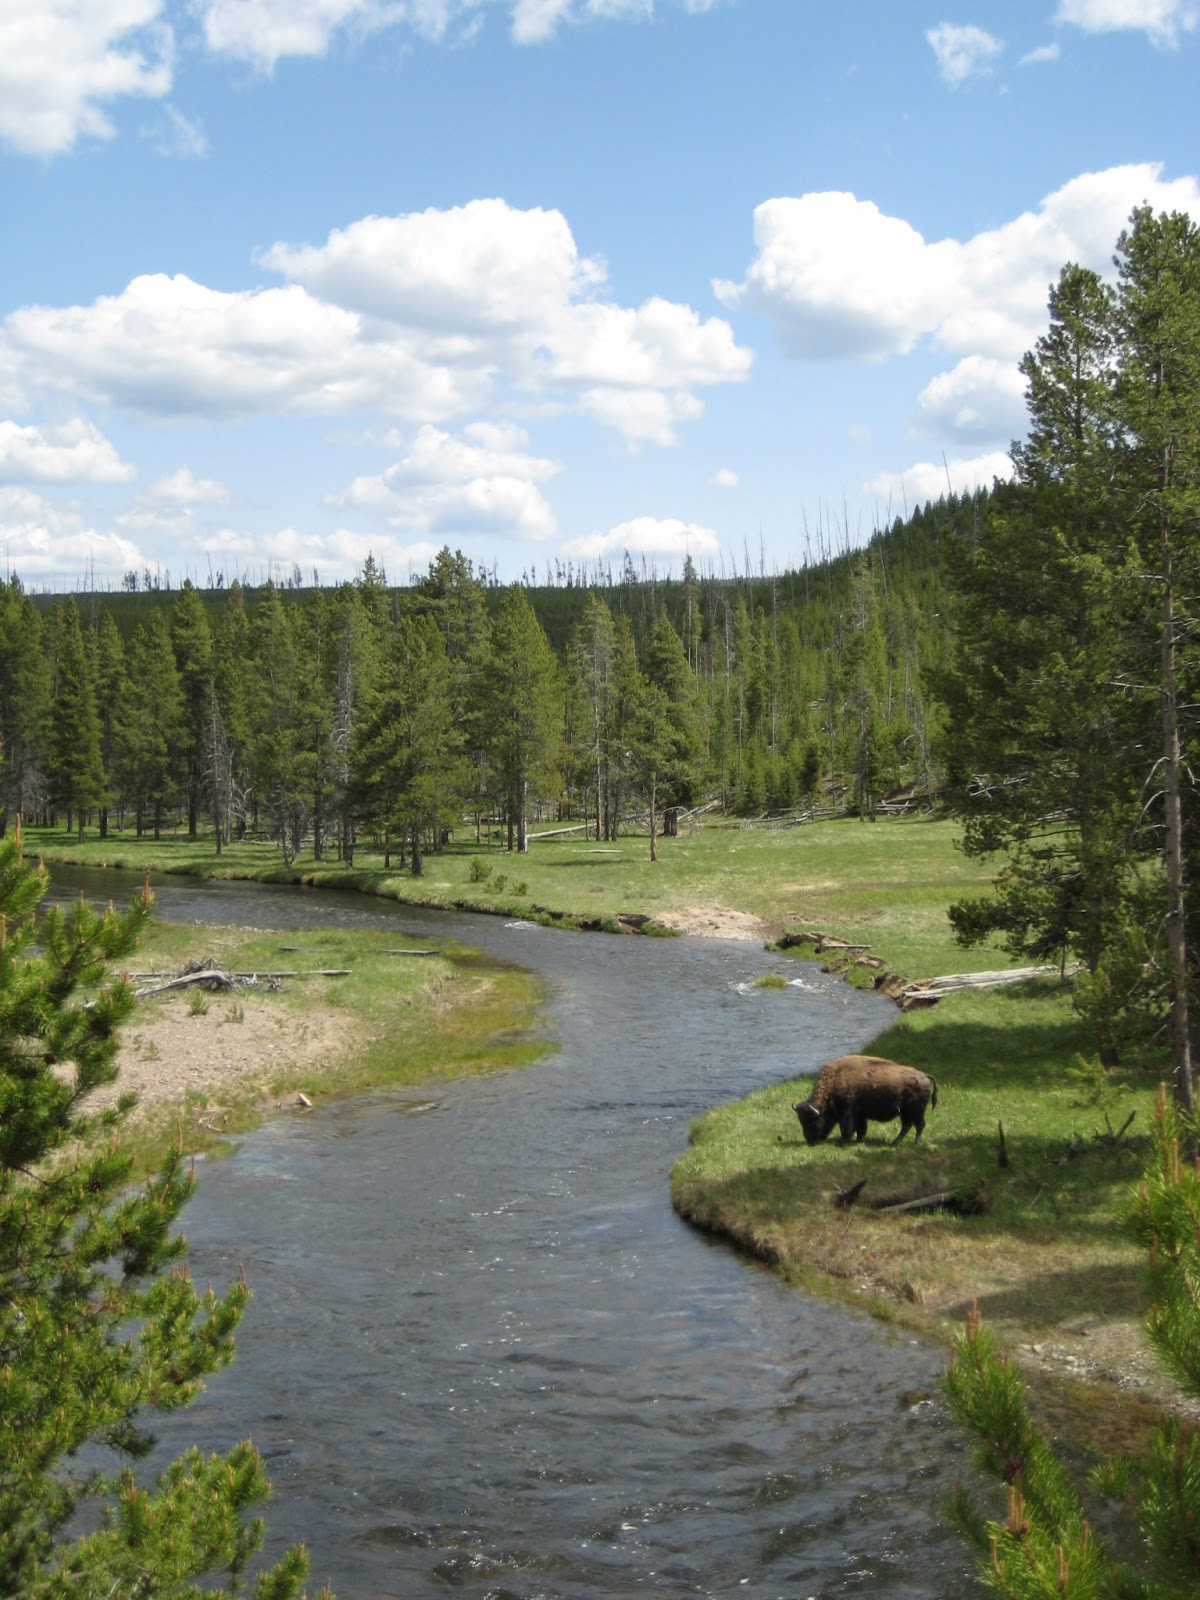 Bison in Yellowstone National Park. Copyright XiaoZhi Lim 2007